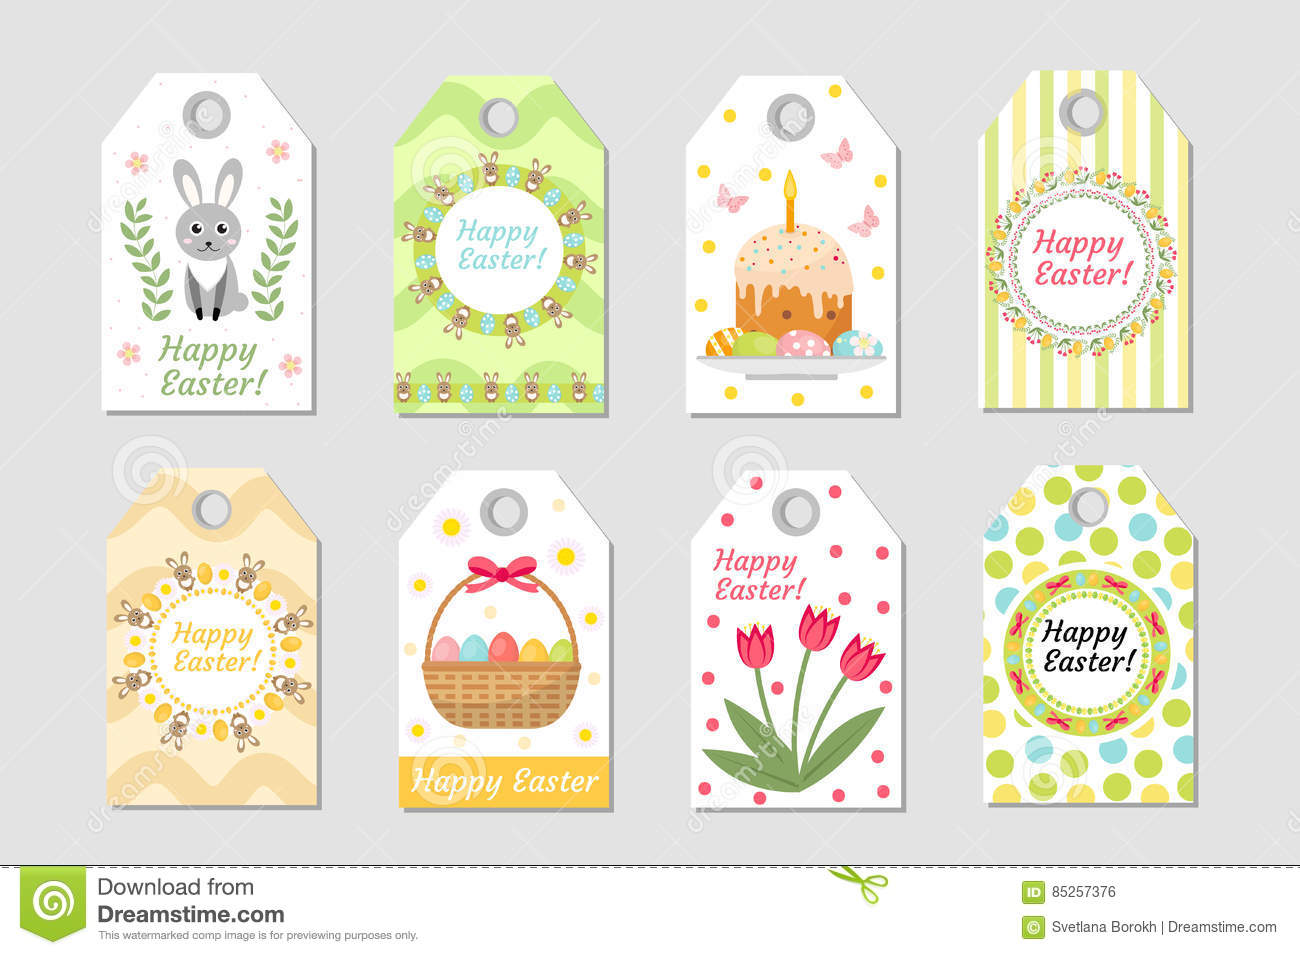 Cute Tags: Cute Easter Tags Set. Labels Collection With Rabbit, Eggs